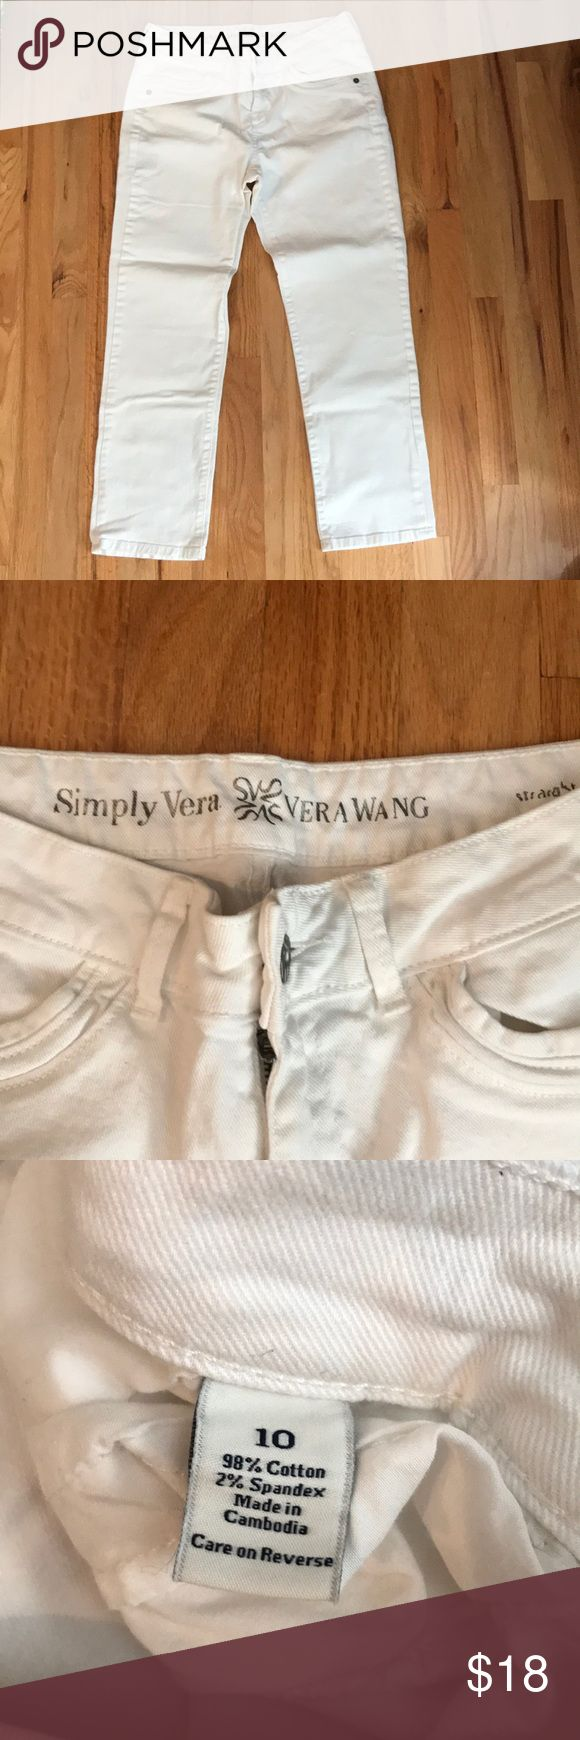 "SUPER CUTE 'Simply Vera Wang' white straight jeans SUPER CUTE 'Simply Vera Wang' white straight jeans - inseam approx 26"" (can be worn as crop jeans on taller person 😊). Excellent barely worn condition - back flap button pockets - SUPER CUTE! Simply Vera Vera Wang Jeans"